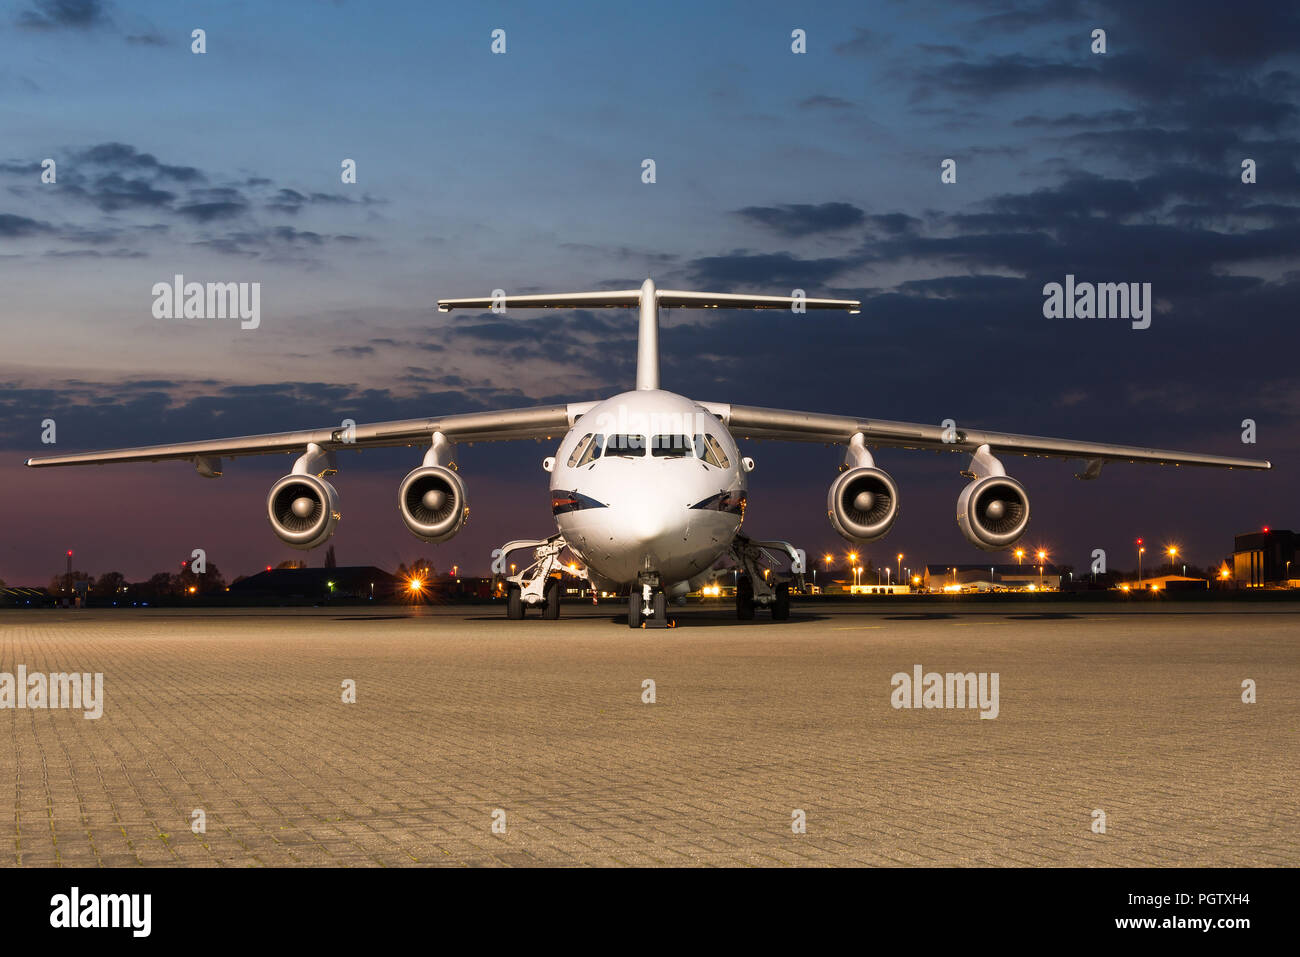 A British Aerospace 146 passanger and VIP aircraft from the No. 32 Squadron of the Royal Air Force at the RAF Northolt airbase. - Stock Image